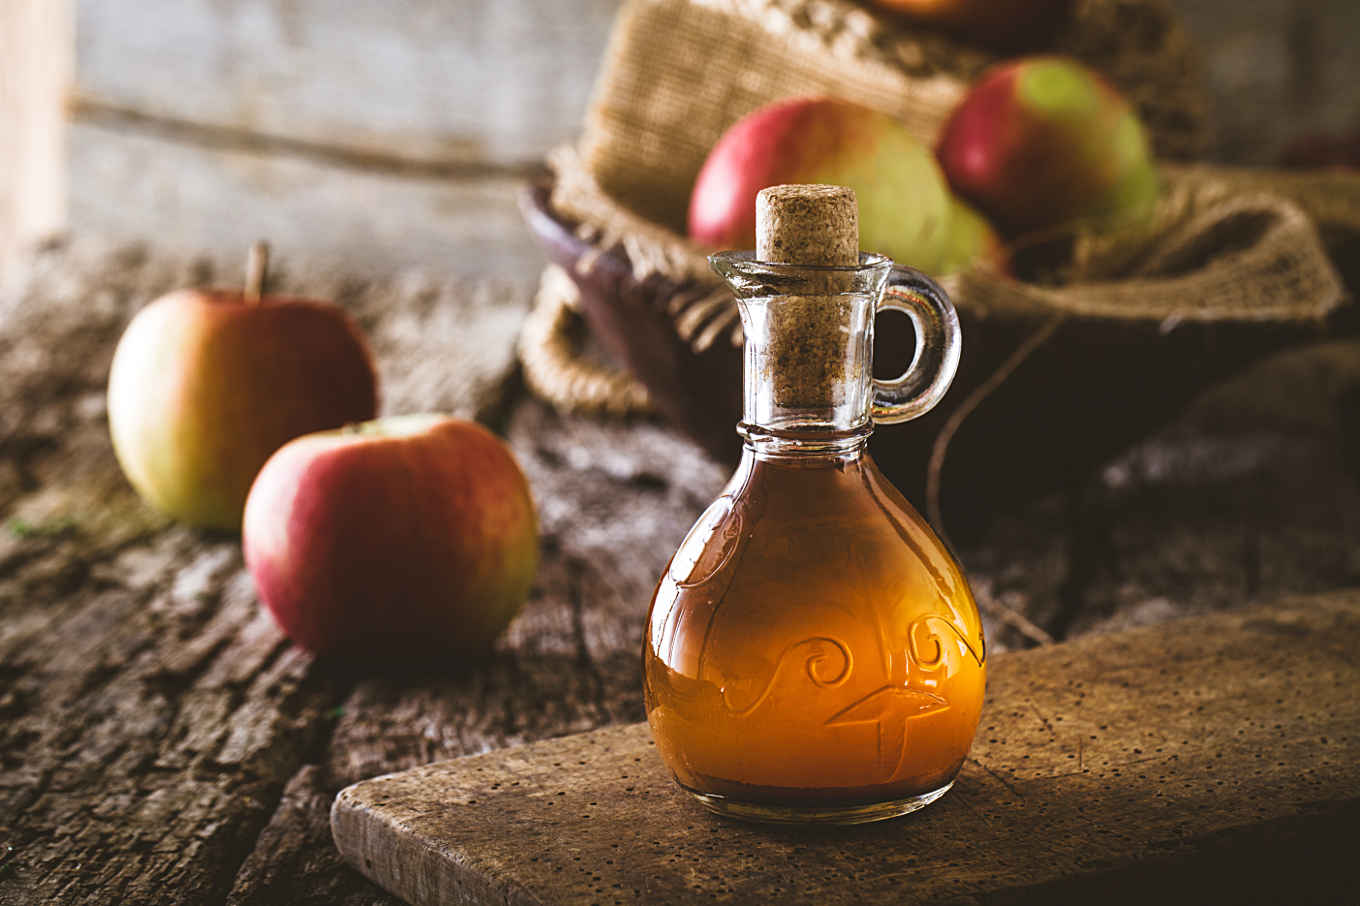 Will Vinegar Help Lower Blood Sugar?